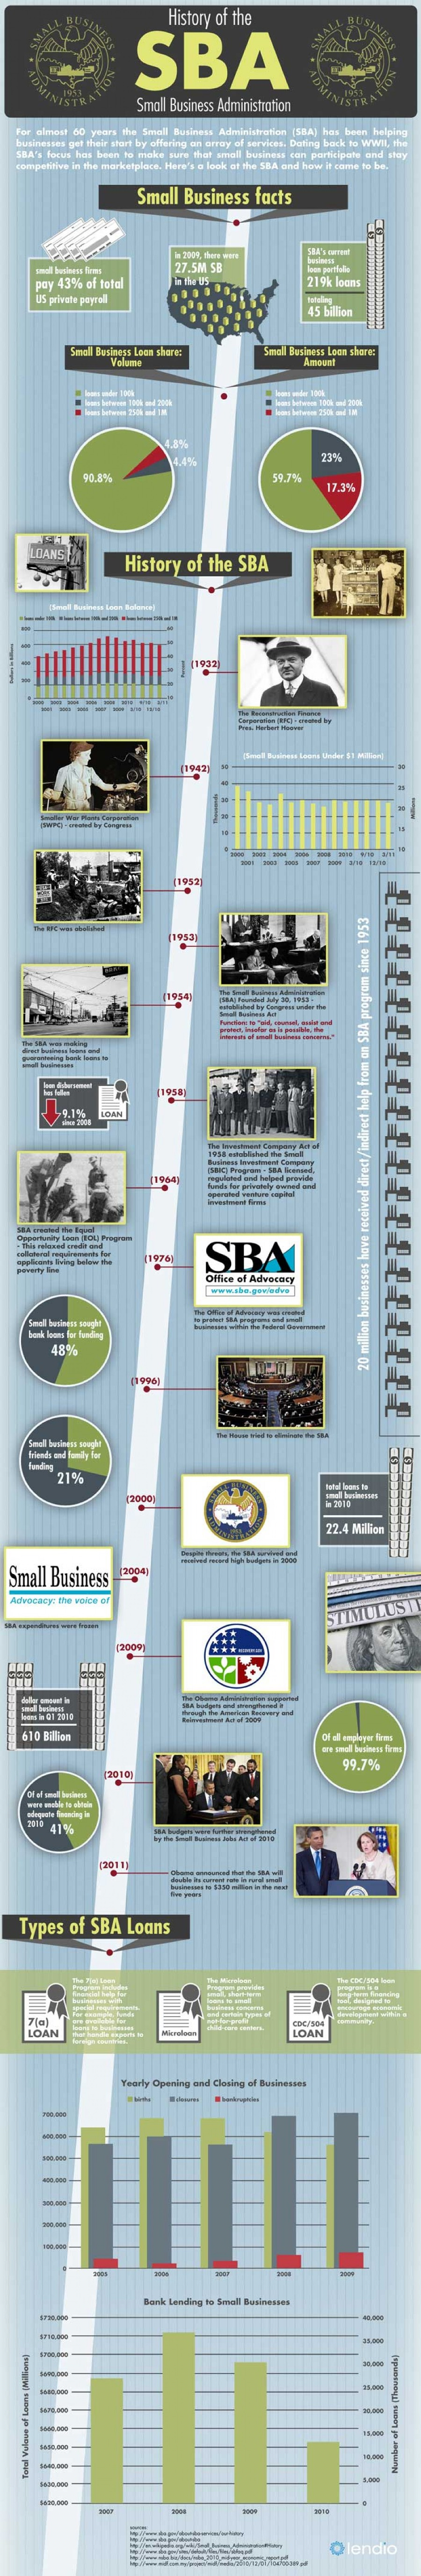 History of Small Business Administration (SBA)